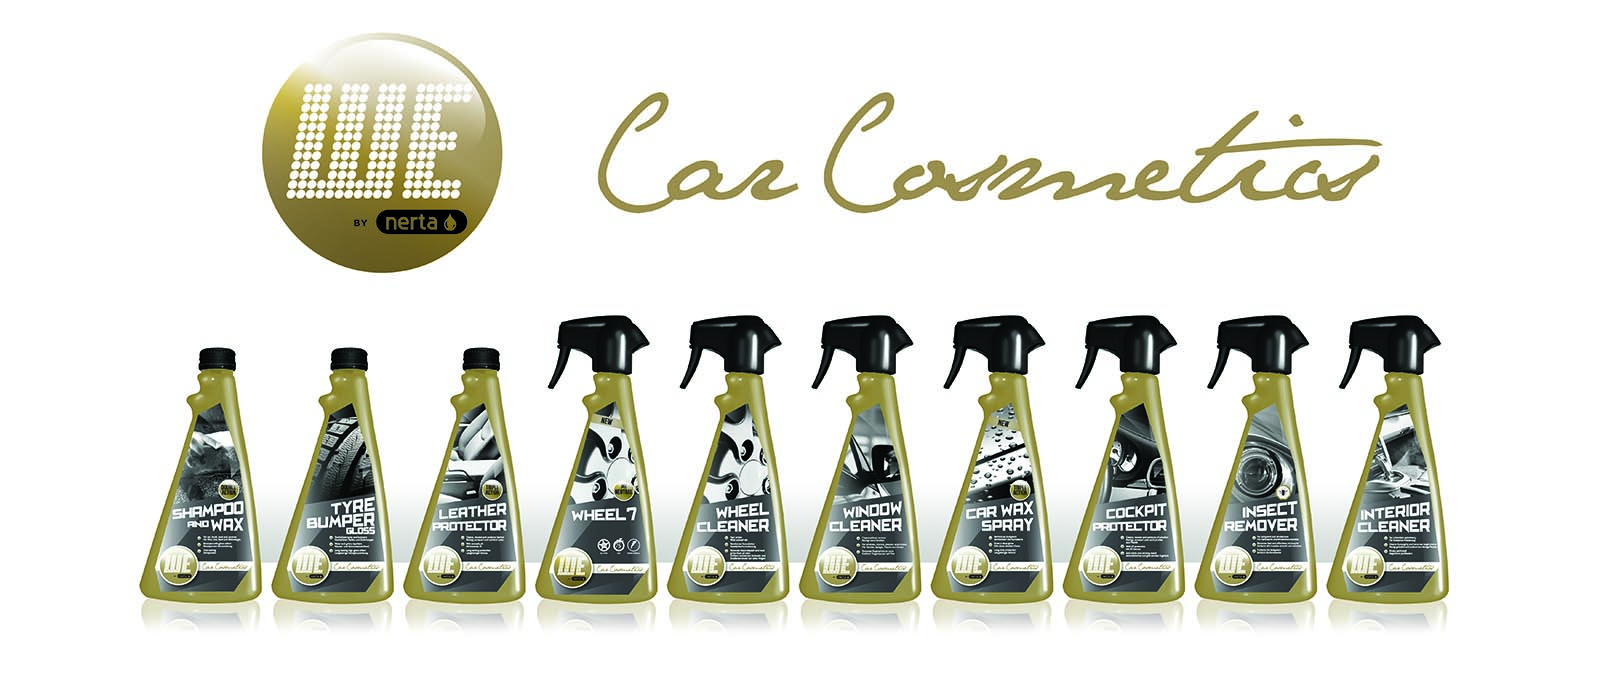 Product development for Nerta - Car Cleaning Products